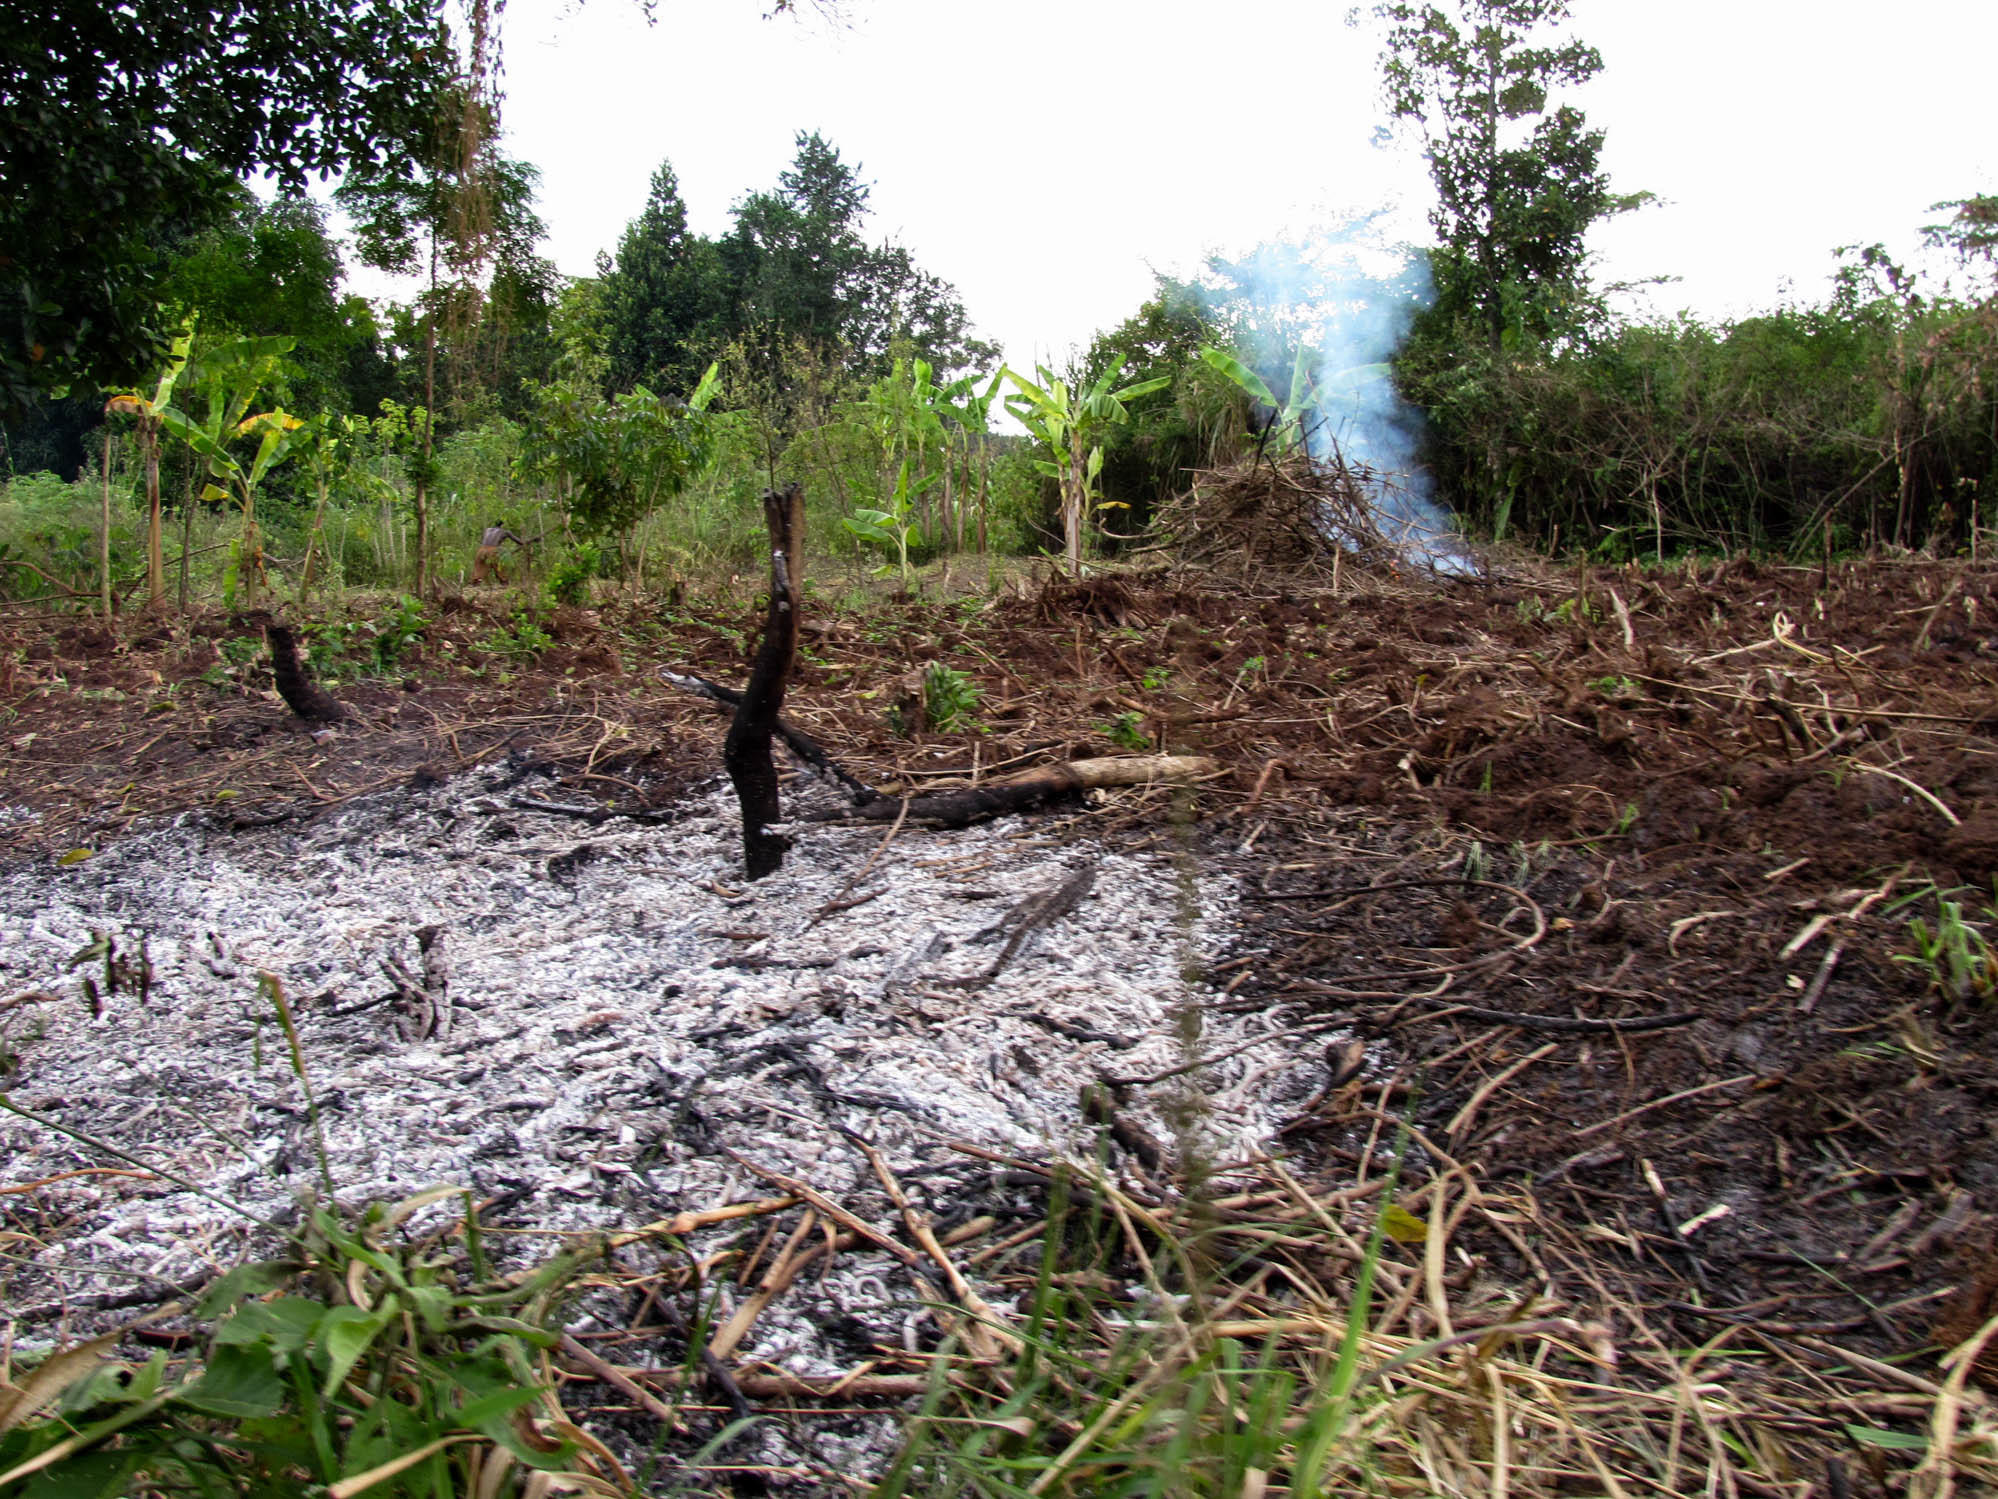 Is it a good idea to pay villagers not to chop down trees kuow news and information - Small farming ideas that pay off ...